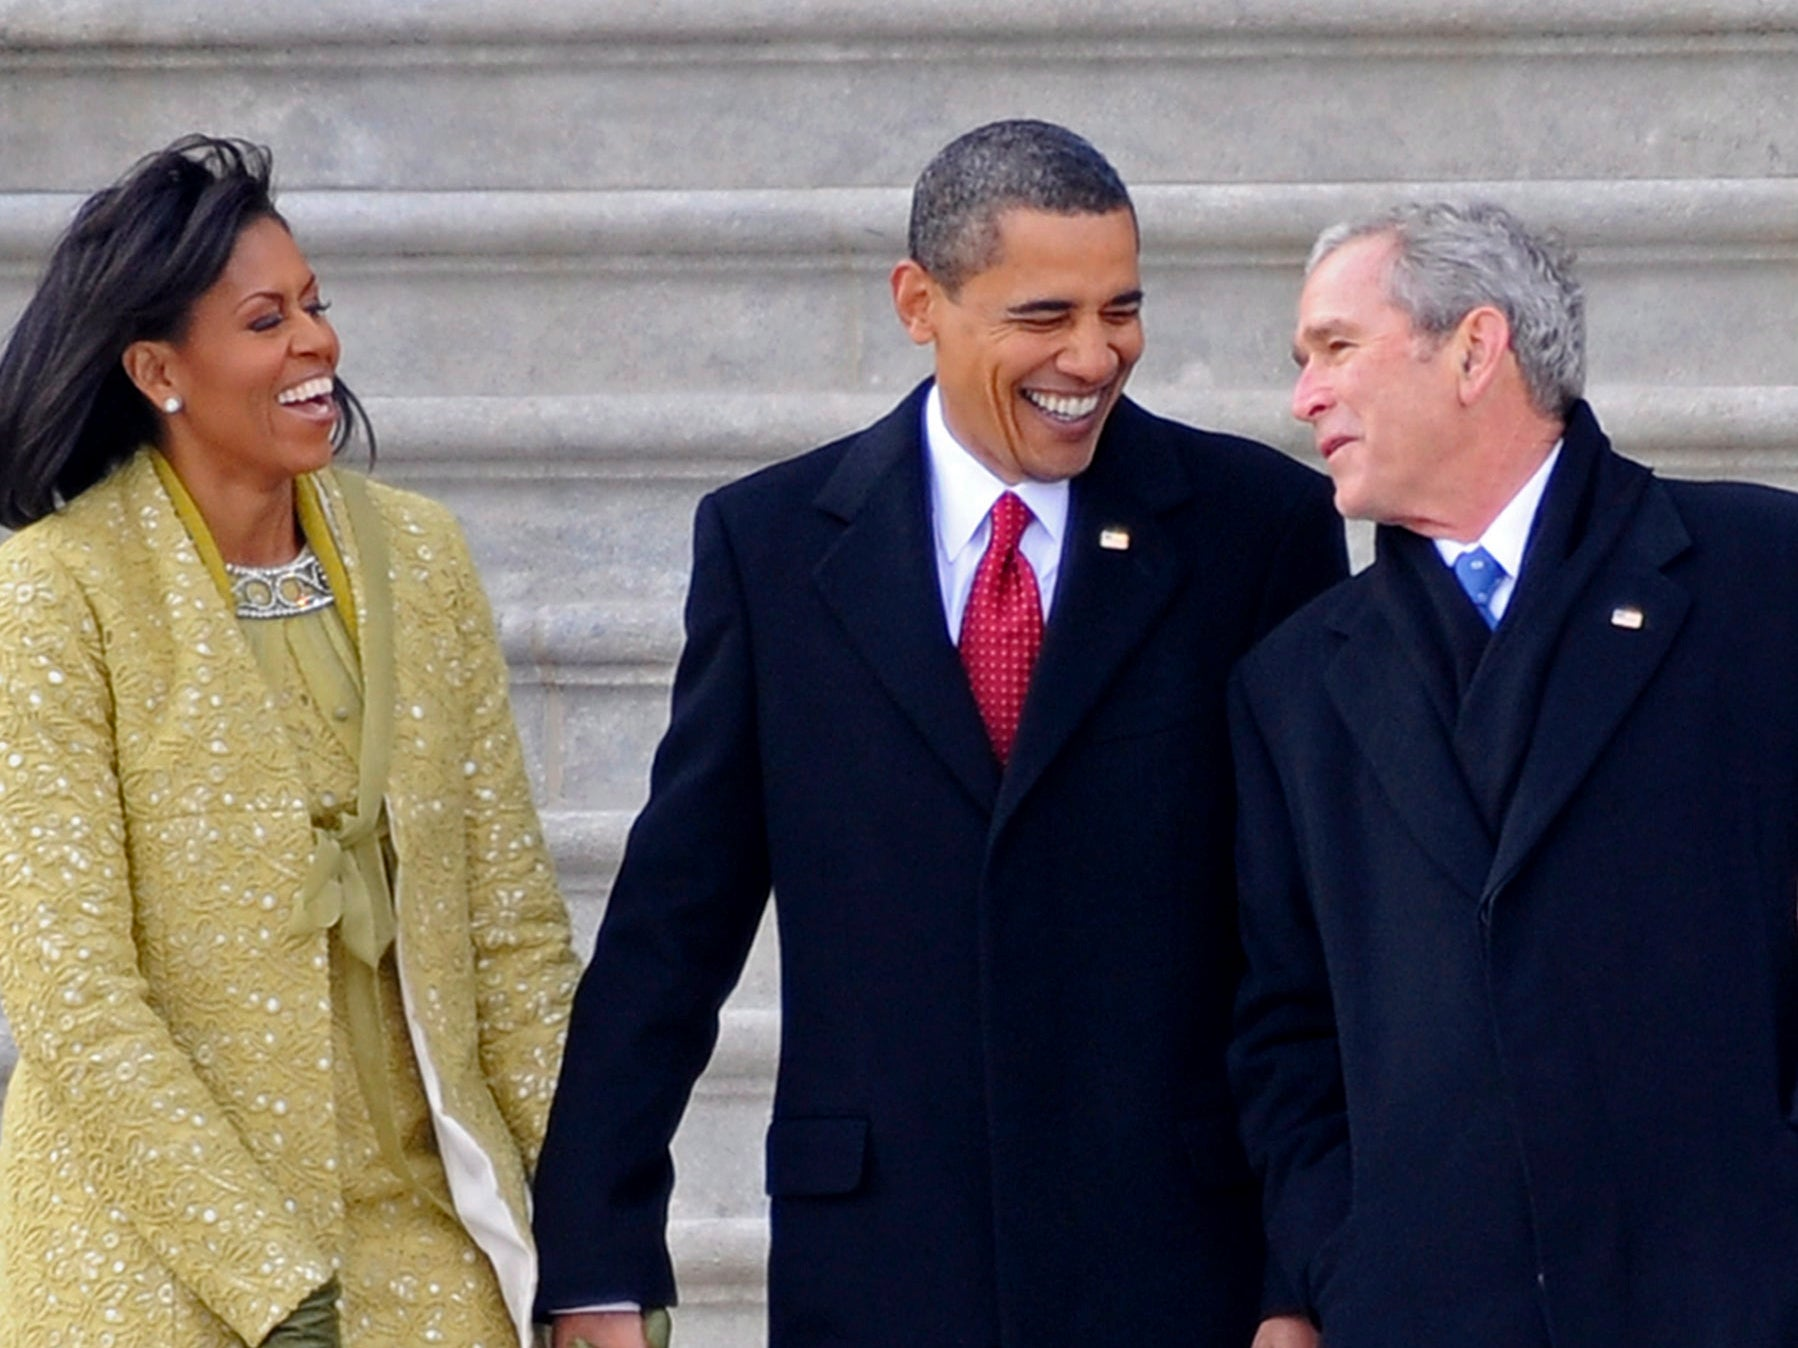 Barack, Bill and Dubya: How Democrats came to embrace George W Bush